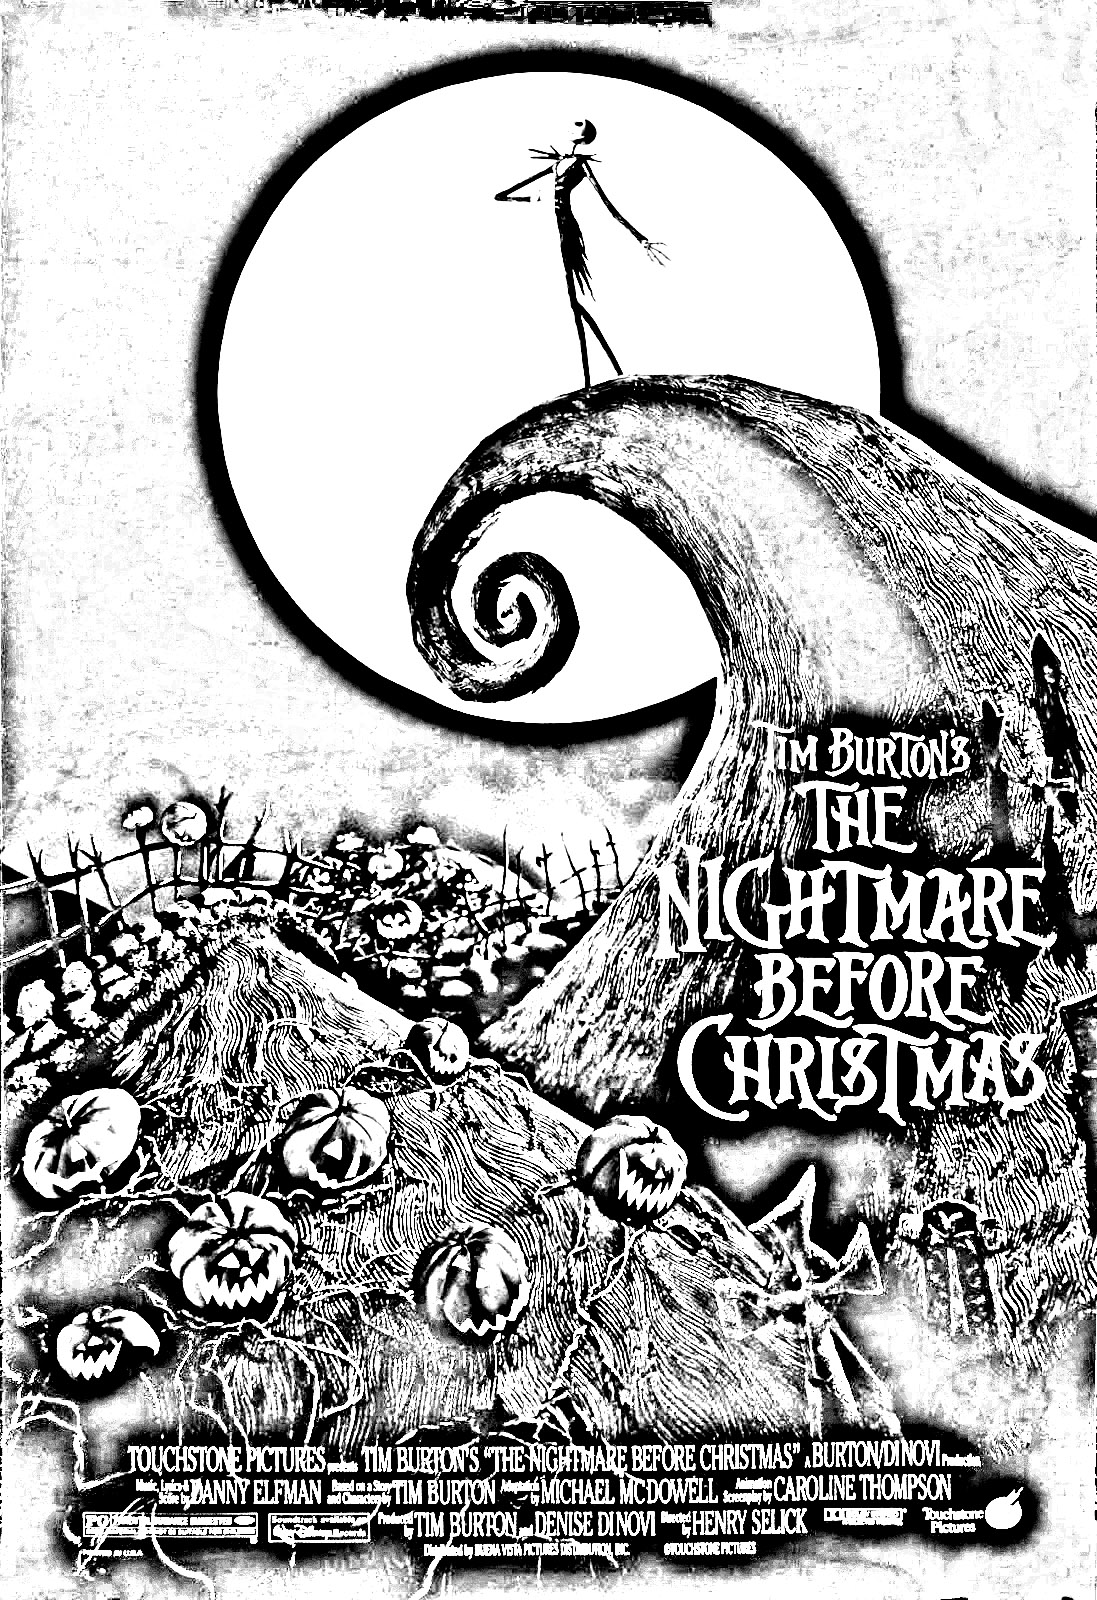 tim burton presents the nightmare before christmas